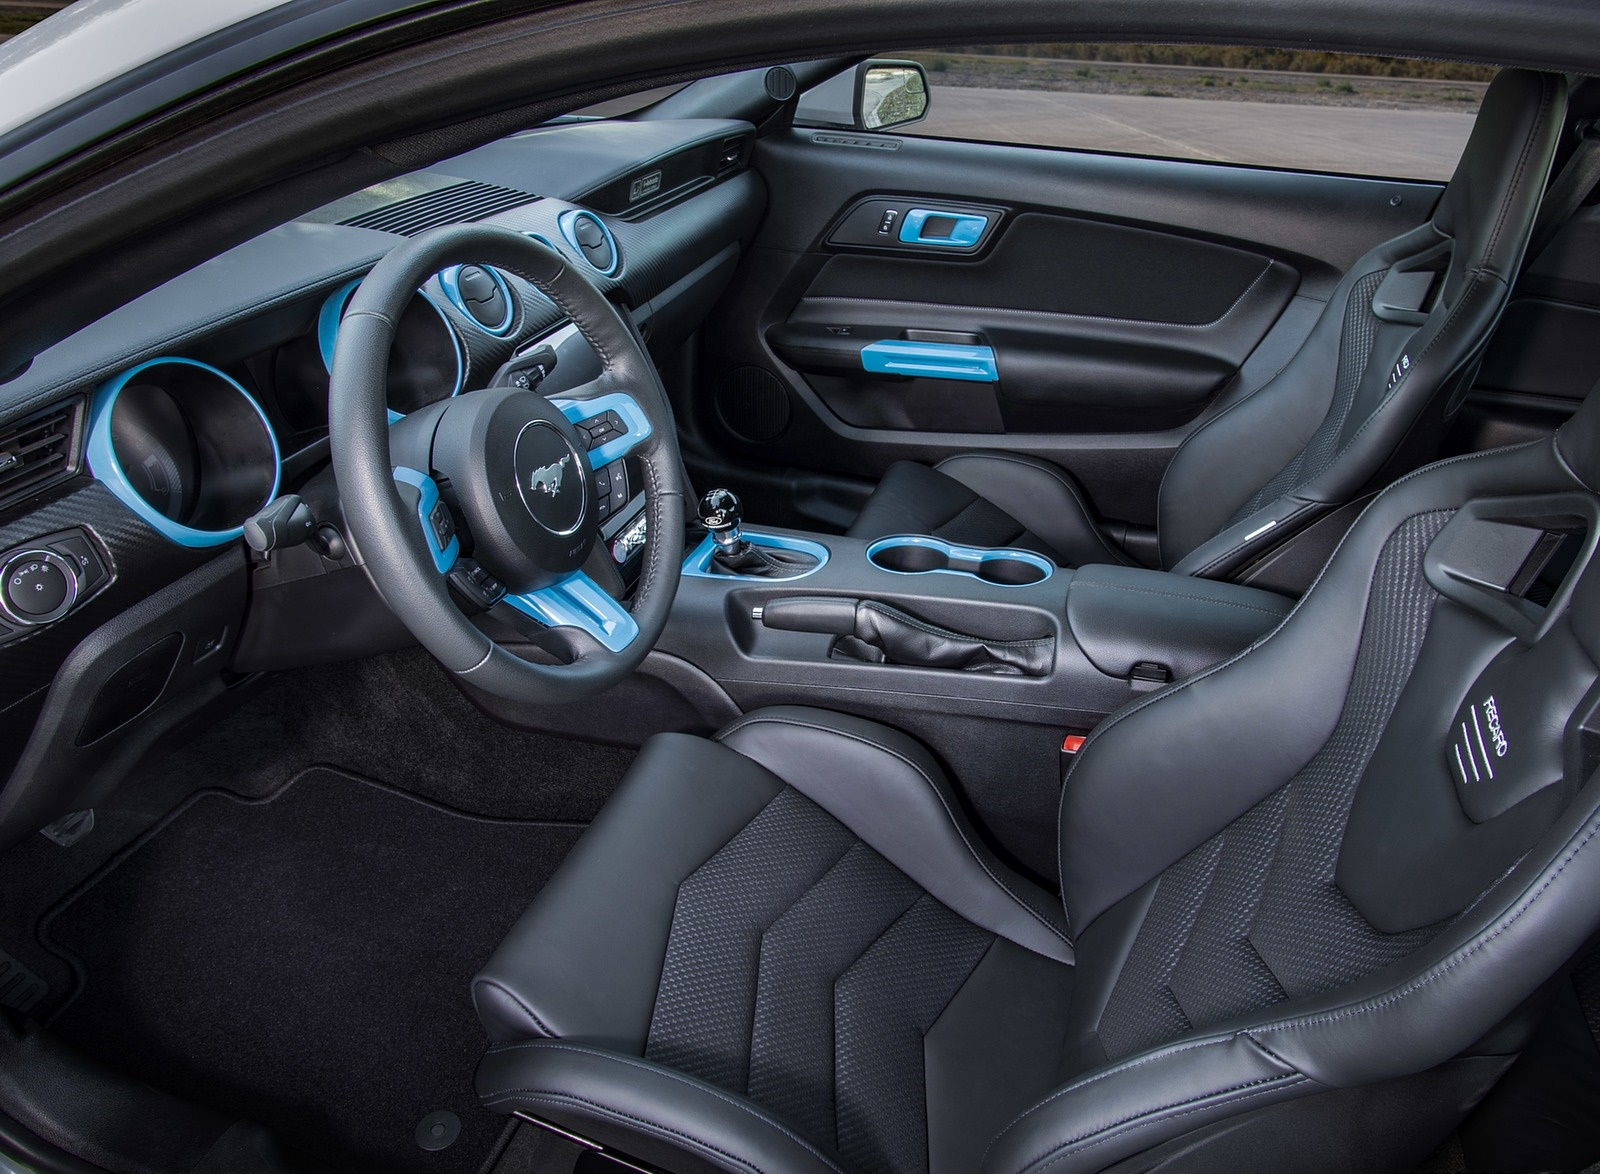 2019 Ford Mustang Lithium Concept Interior Seats Wallpapers (7)